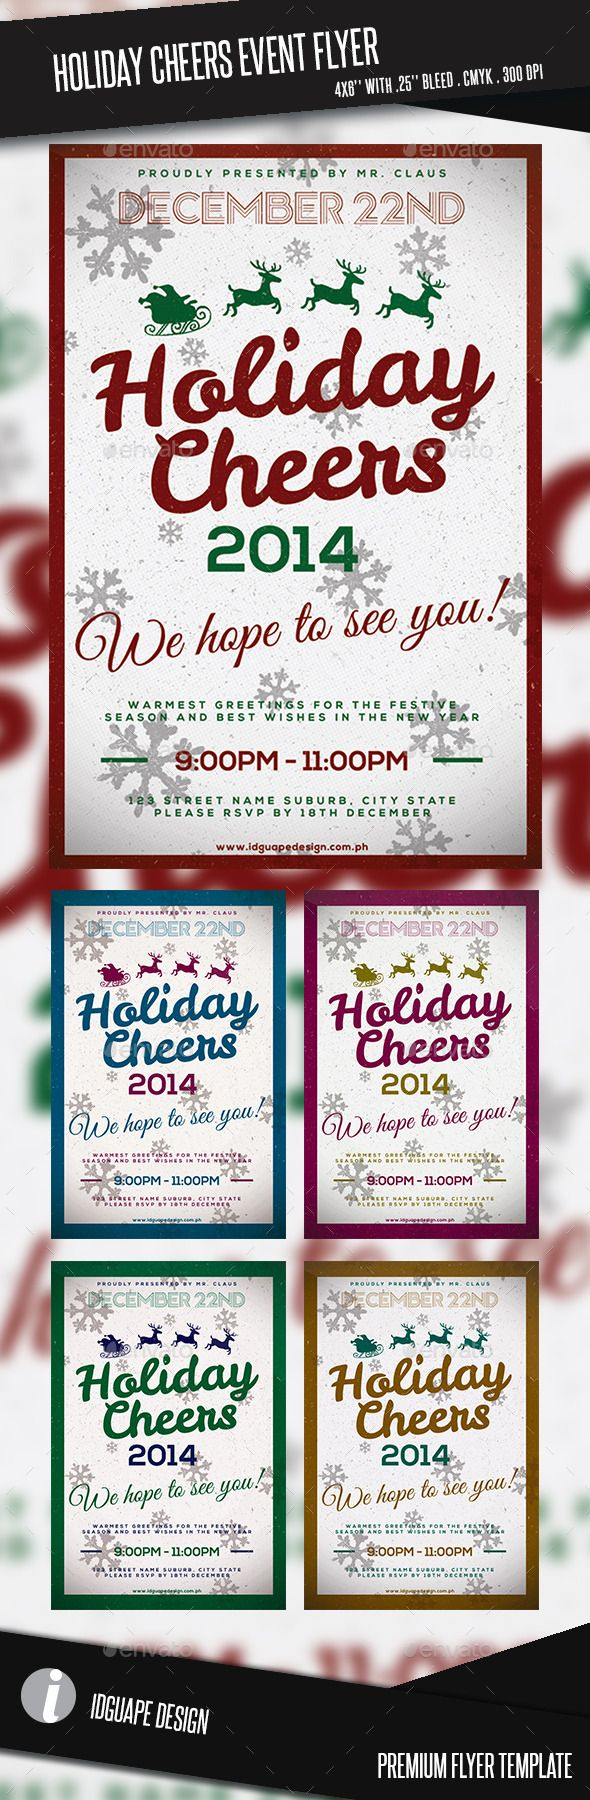 holiday cheers event flyer event flyers cheer and flyer template